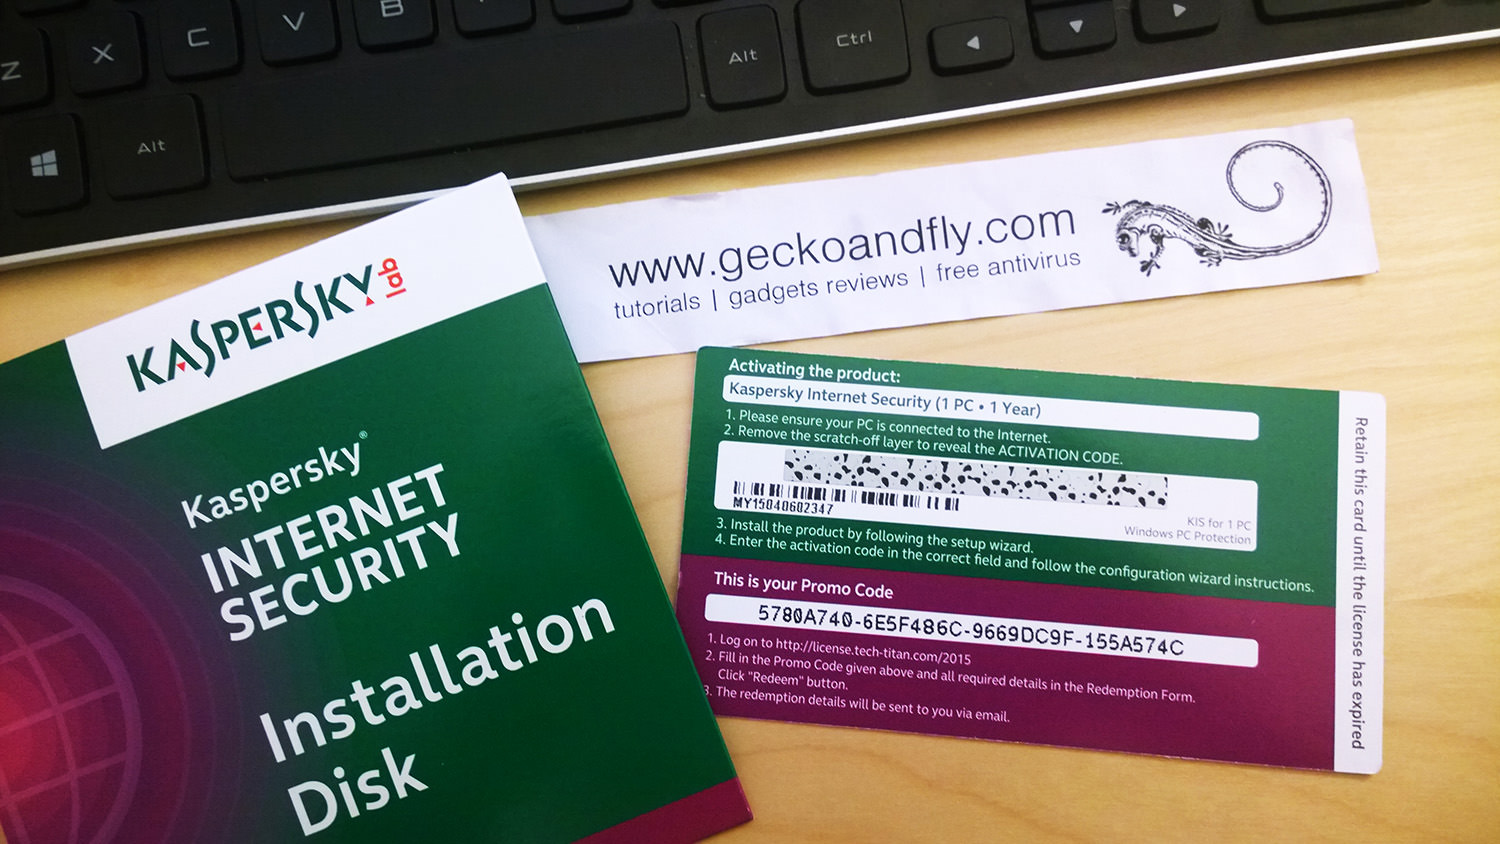 download kaspersky internet security 2017 activation code for 1 year free